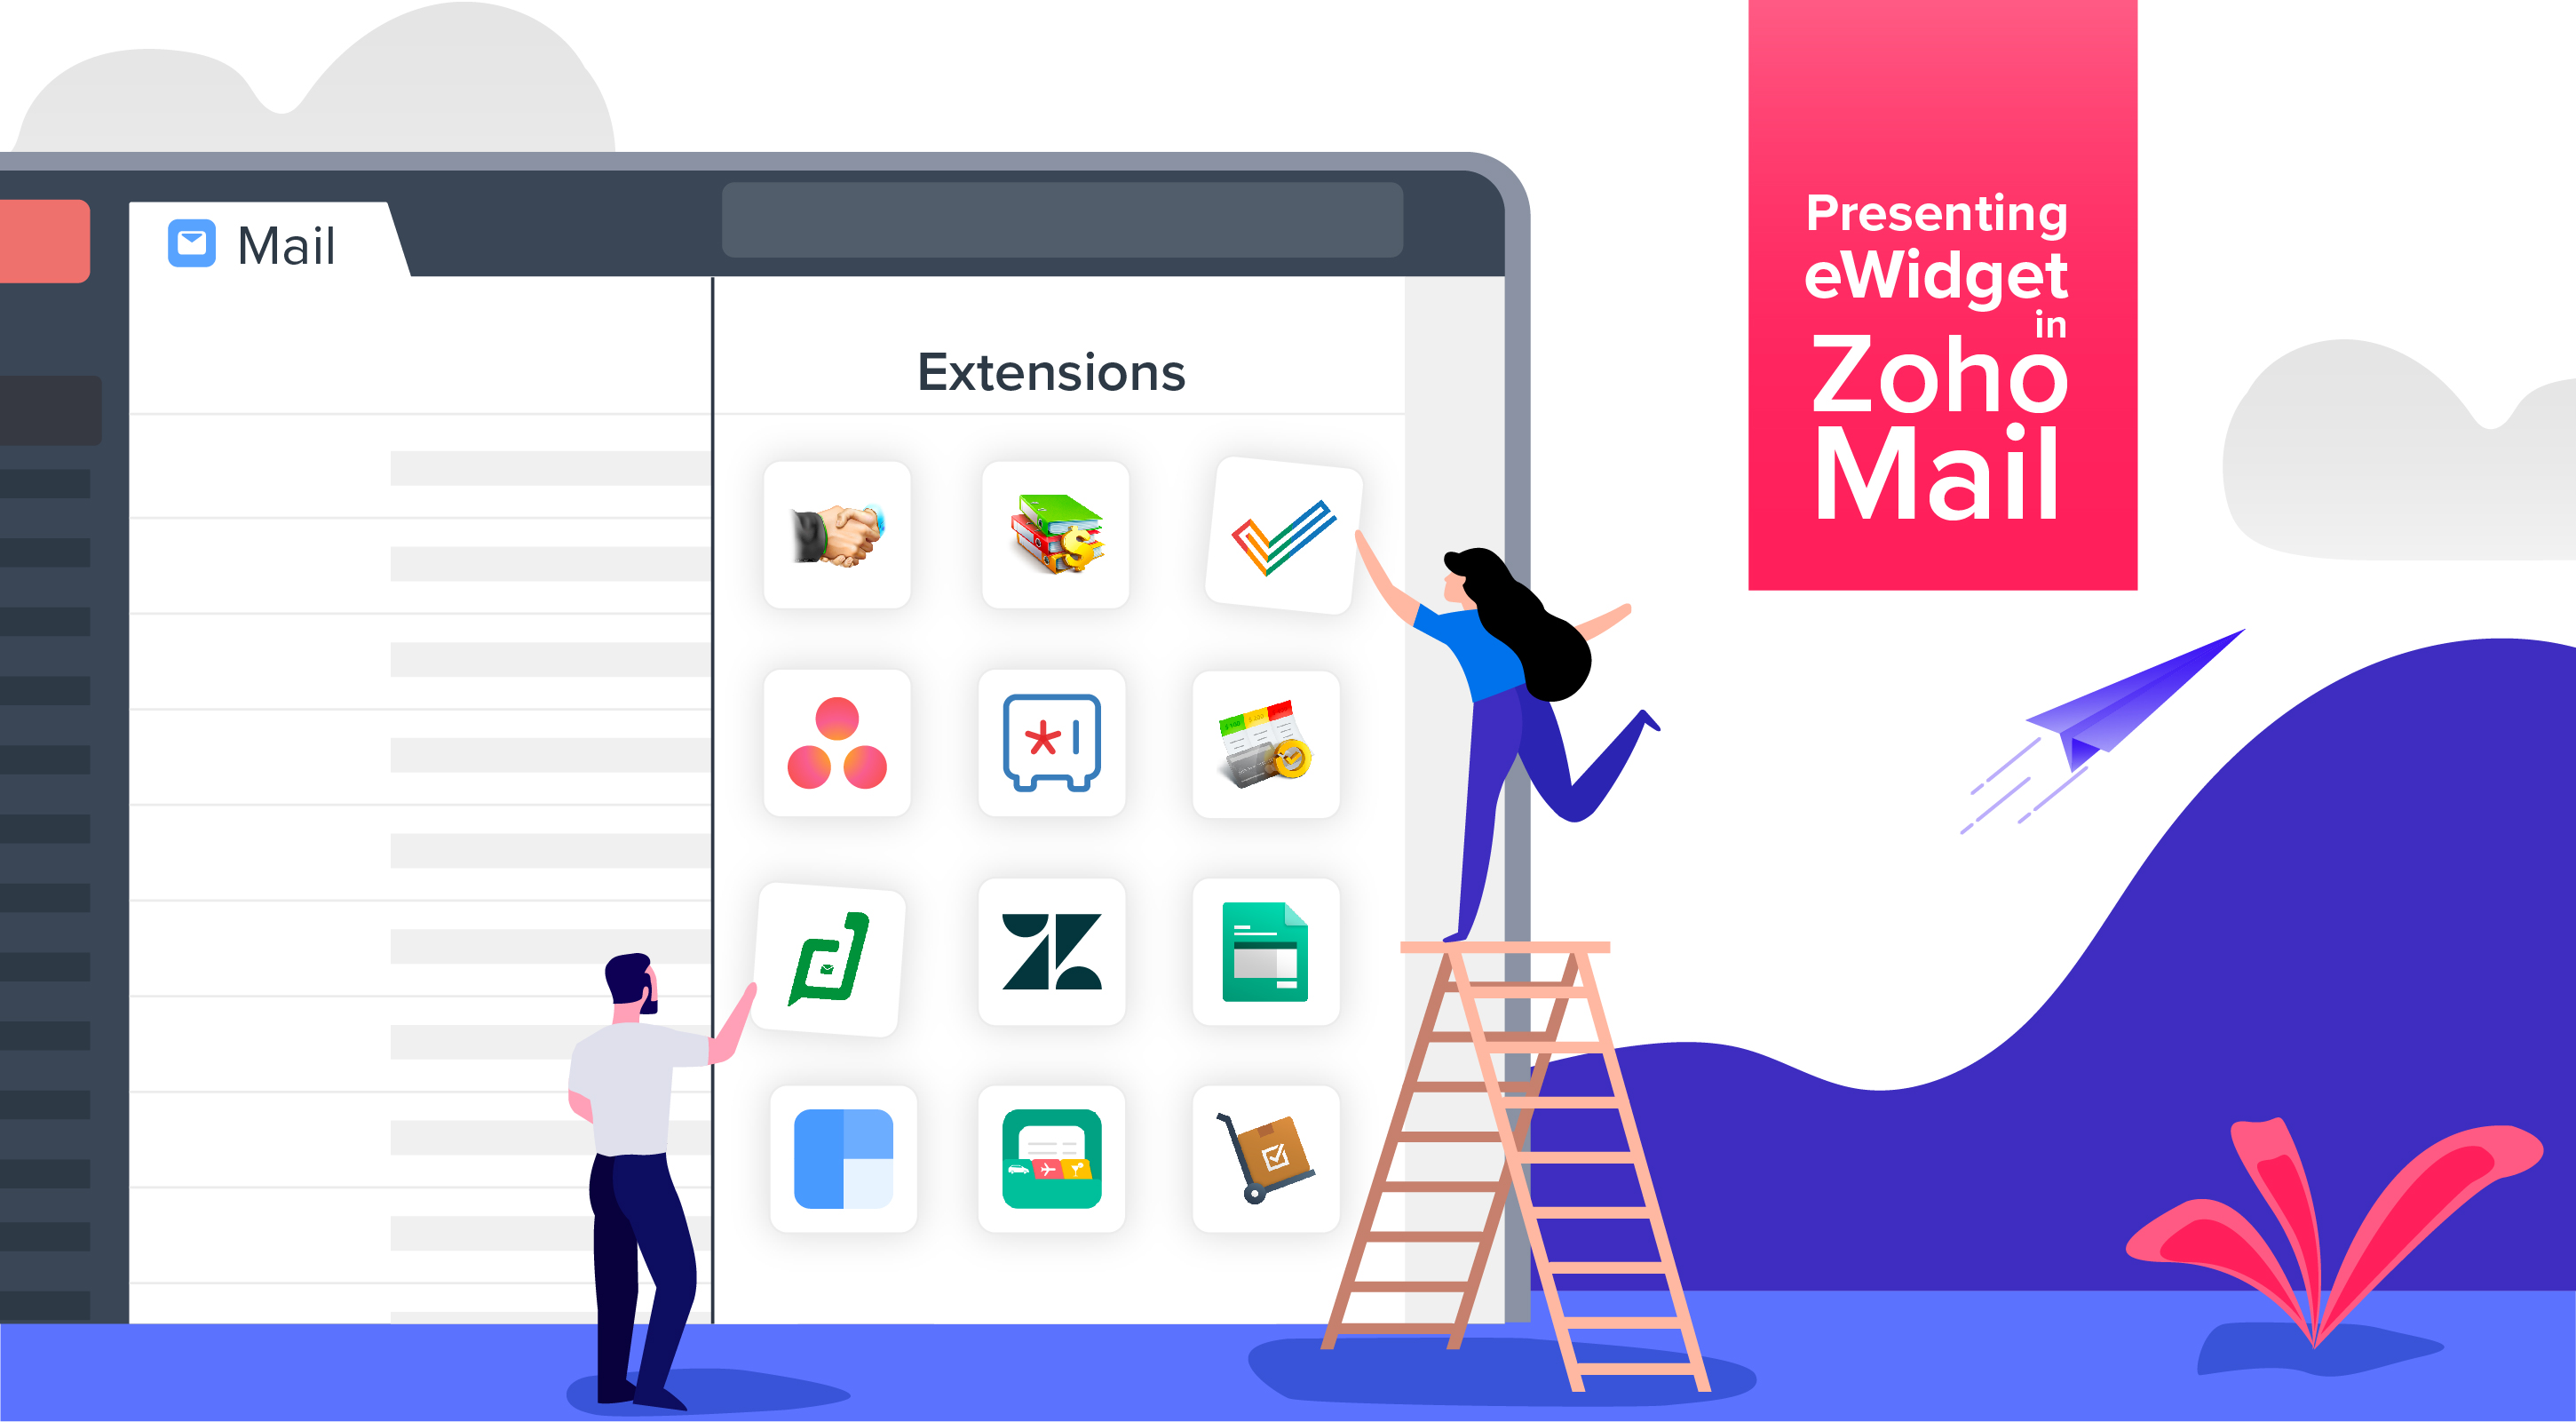 Announcing the new 'eWidget' in Zoho Mail